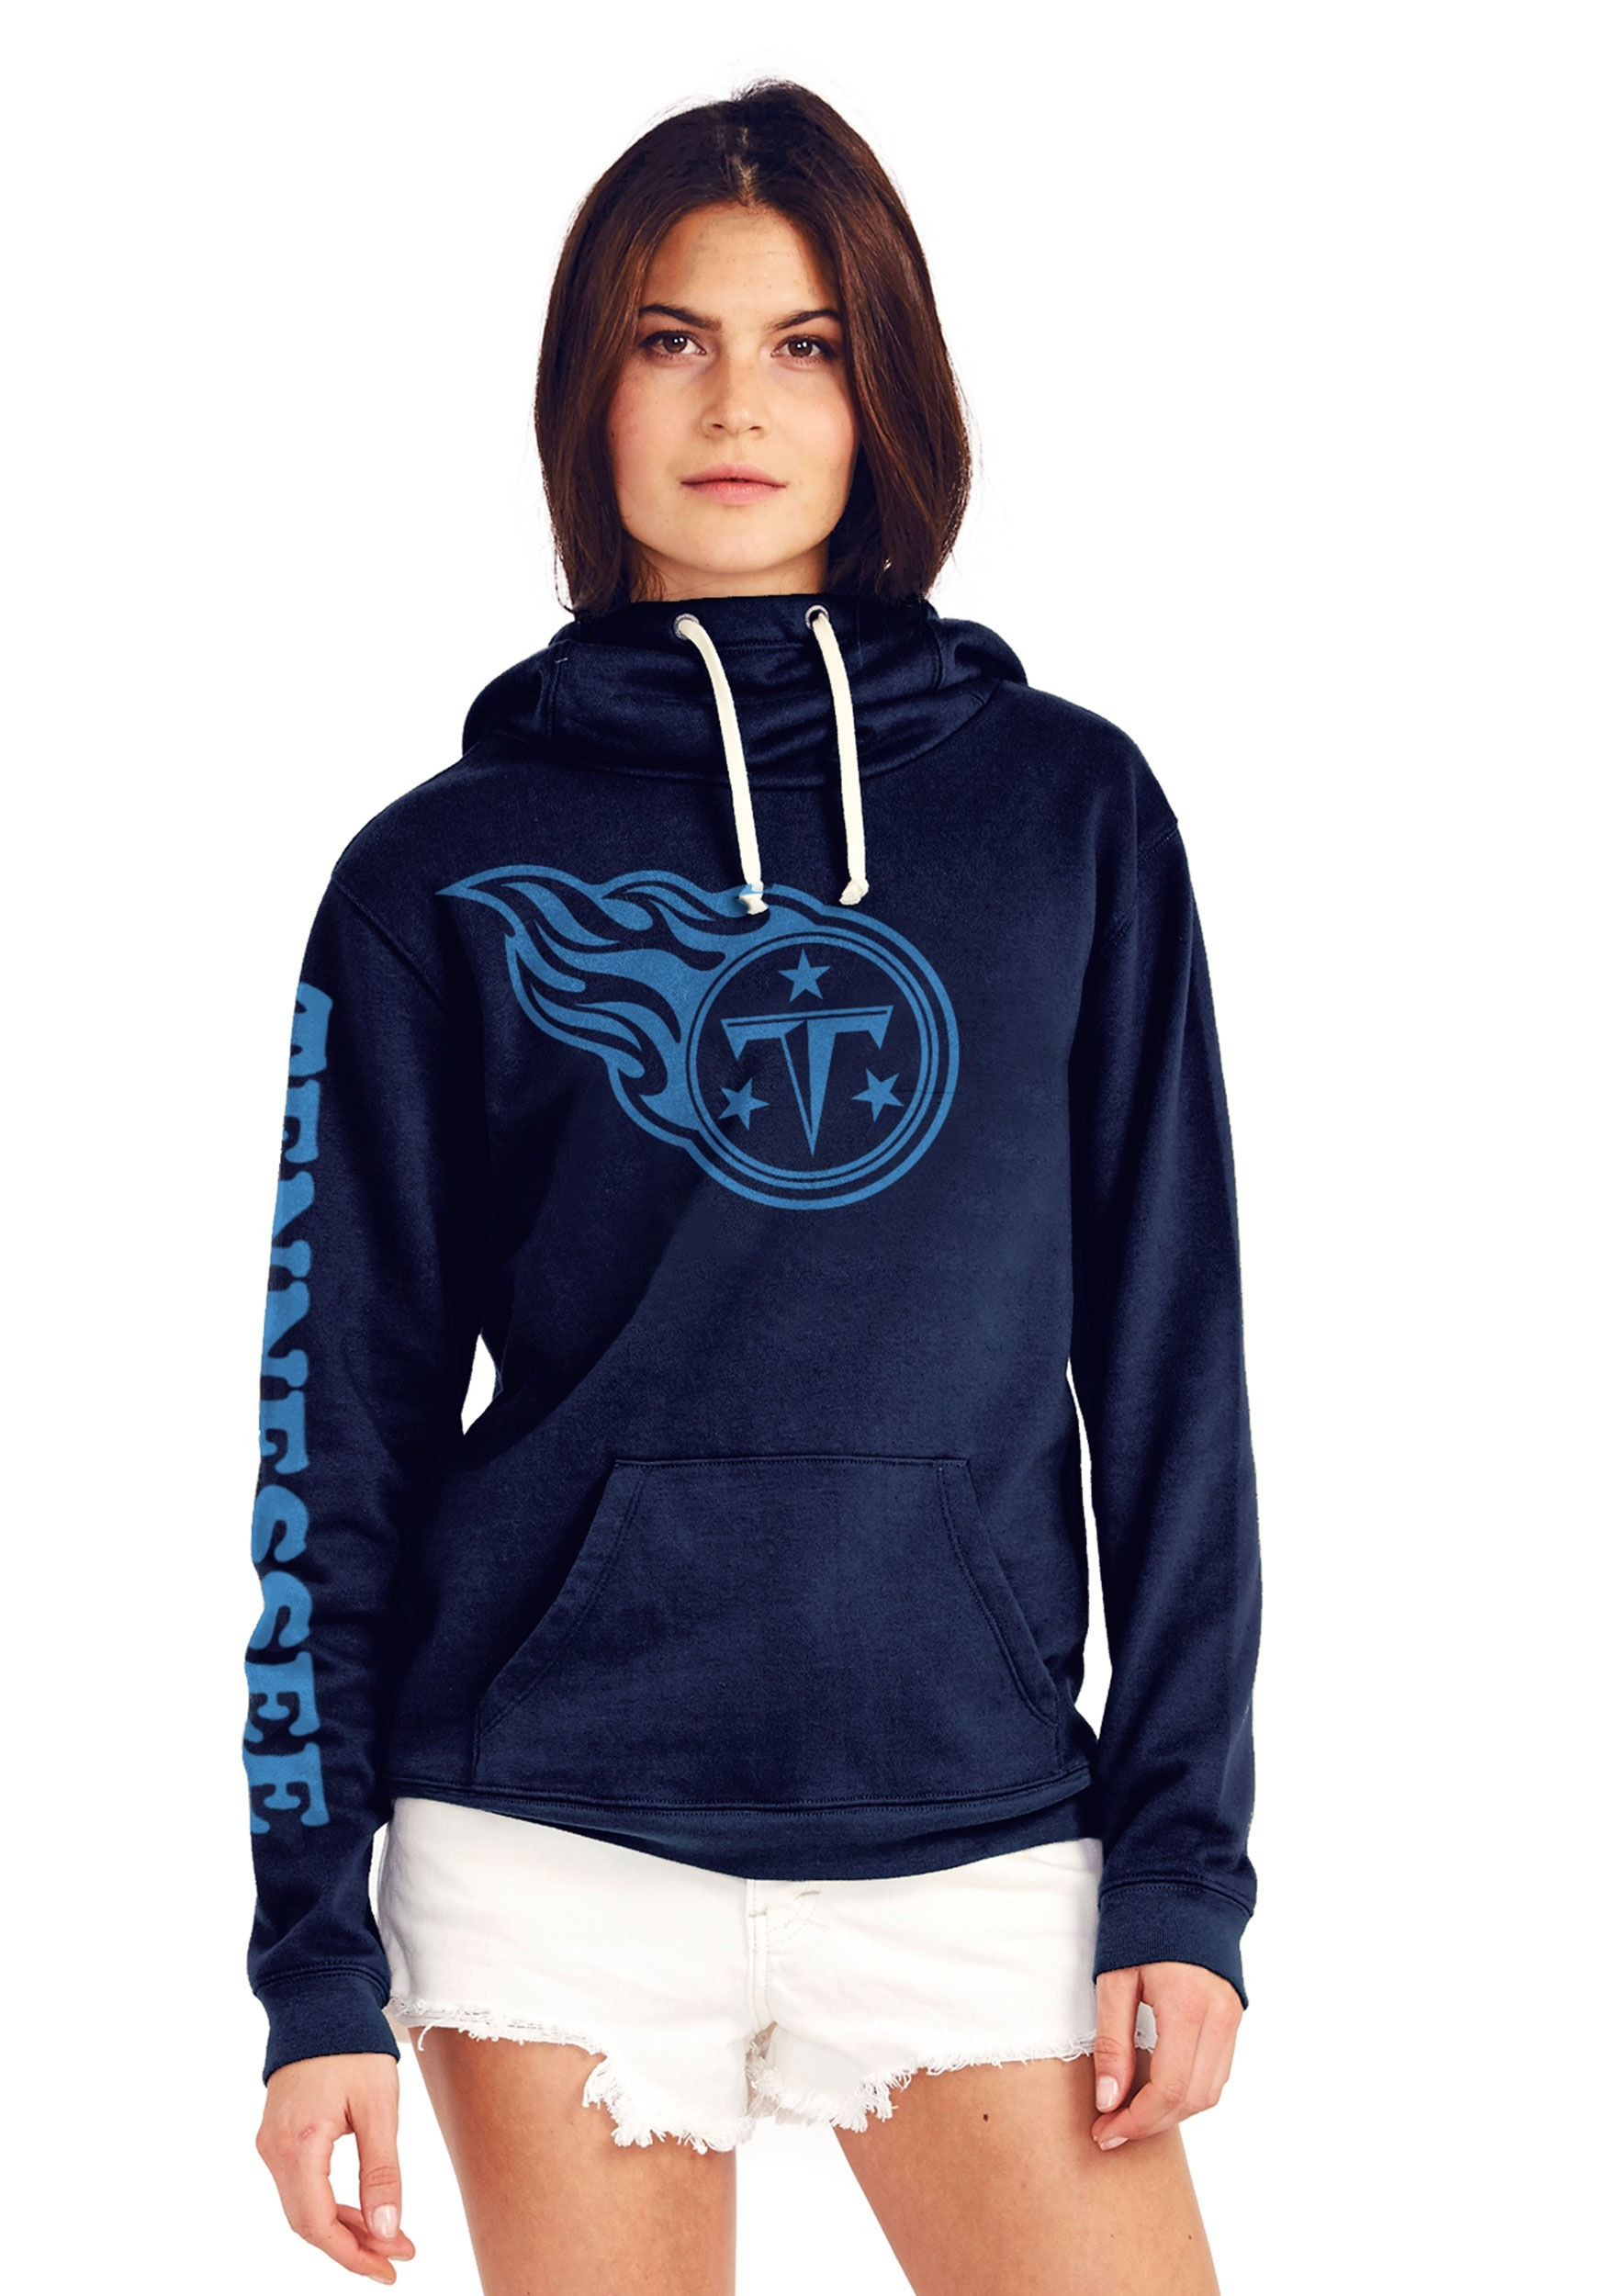 Tennessee Titans Women s Cowl Neck Hooded Sweatshirt 1dac9211a75d